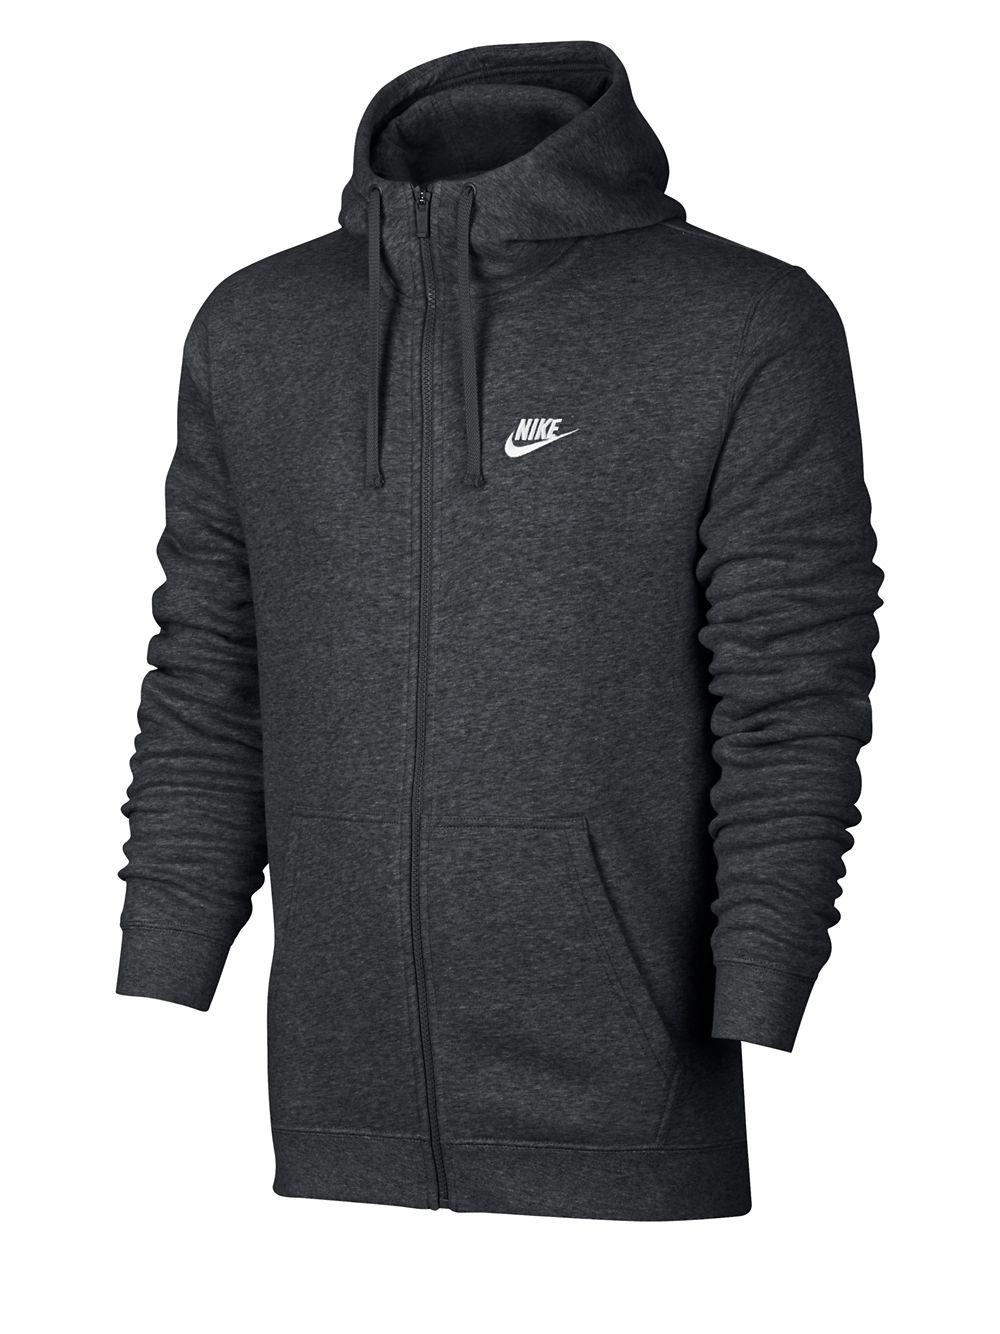 99f26636c4 Nike Embroidered Logo Hoodie in Gray for Men - Lyst